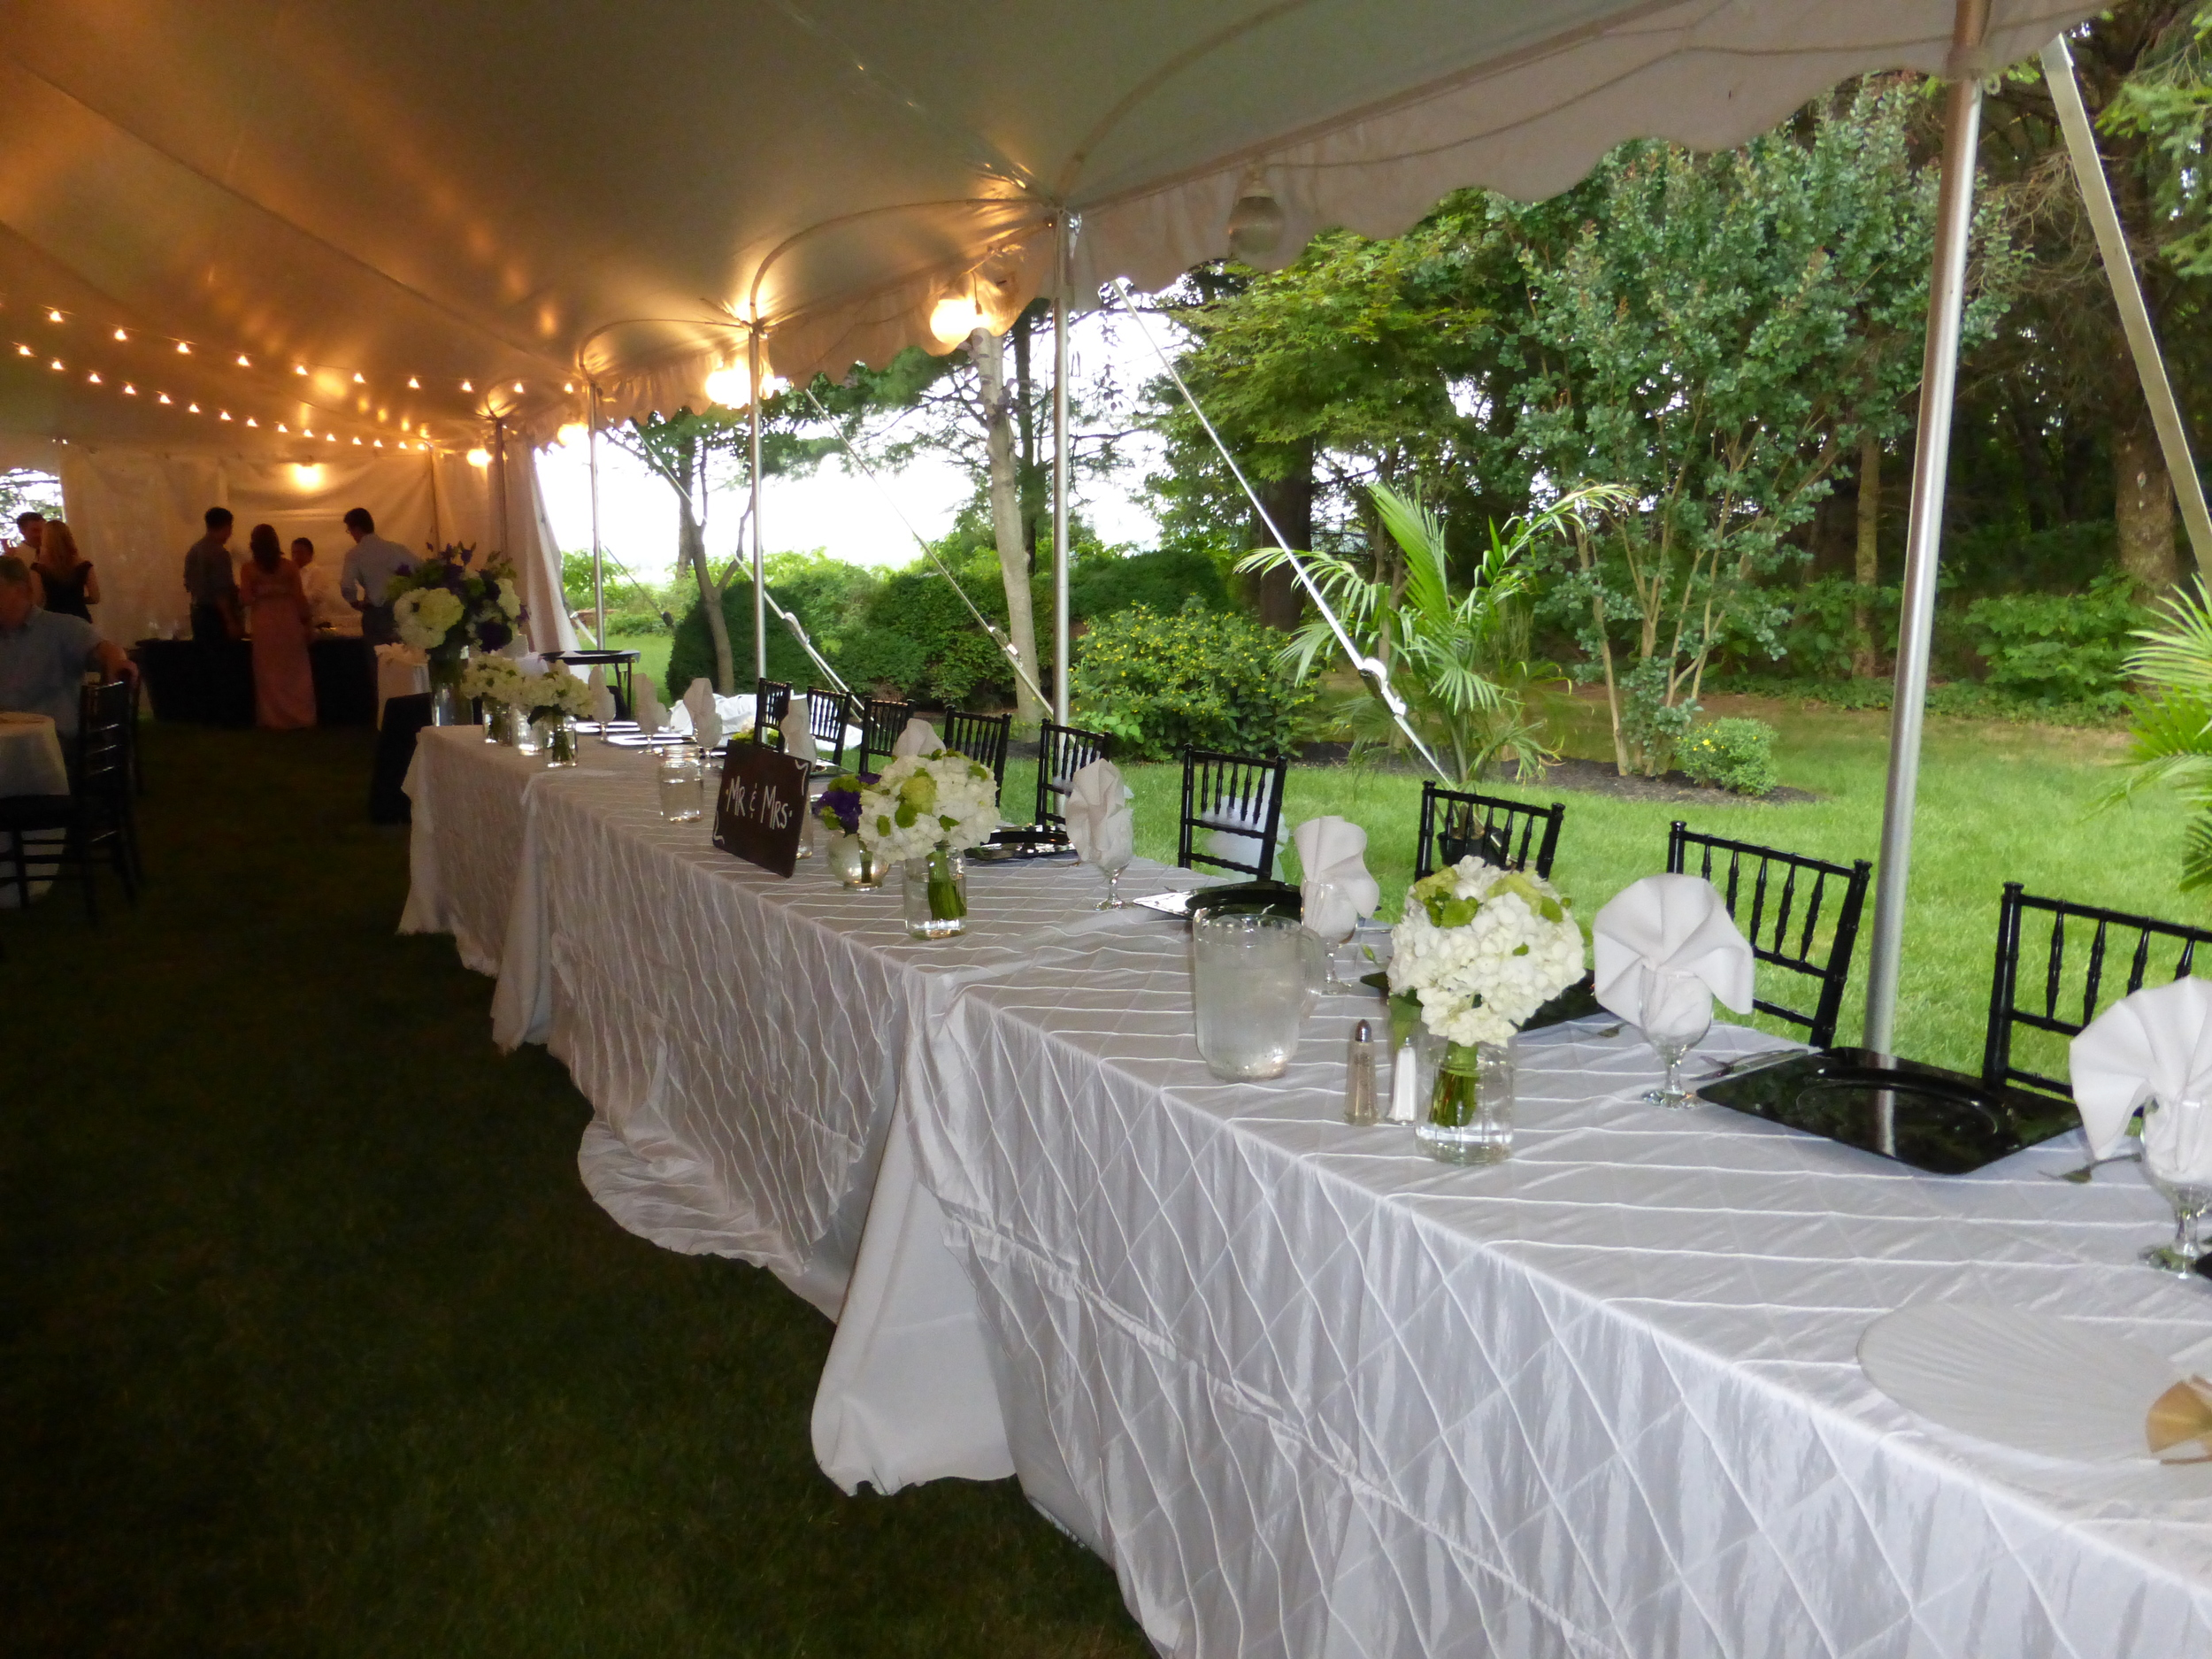 White wedding tent with cafe lights and globe lights